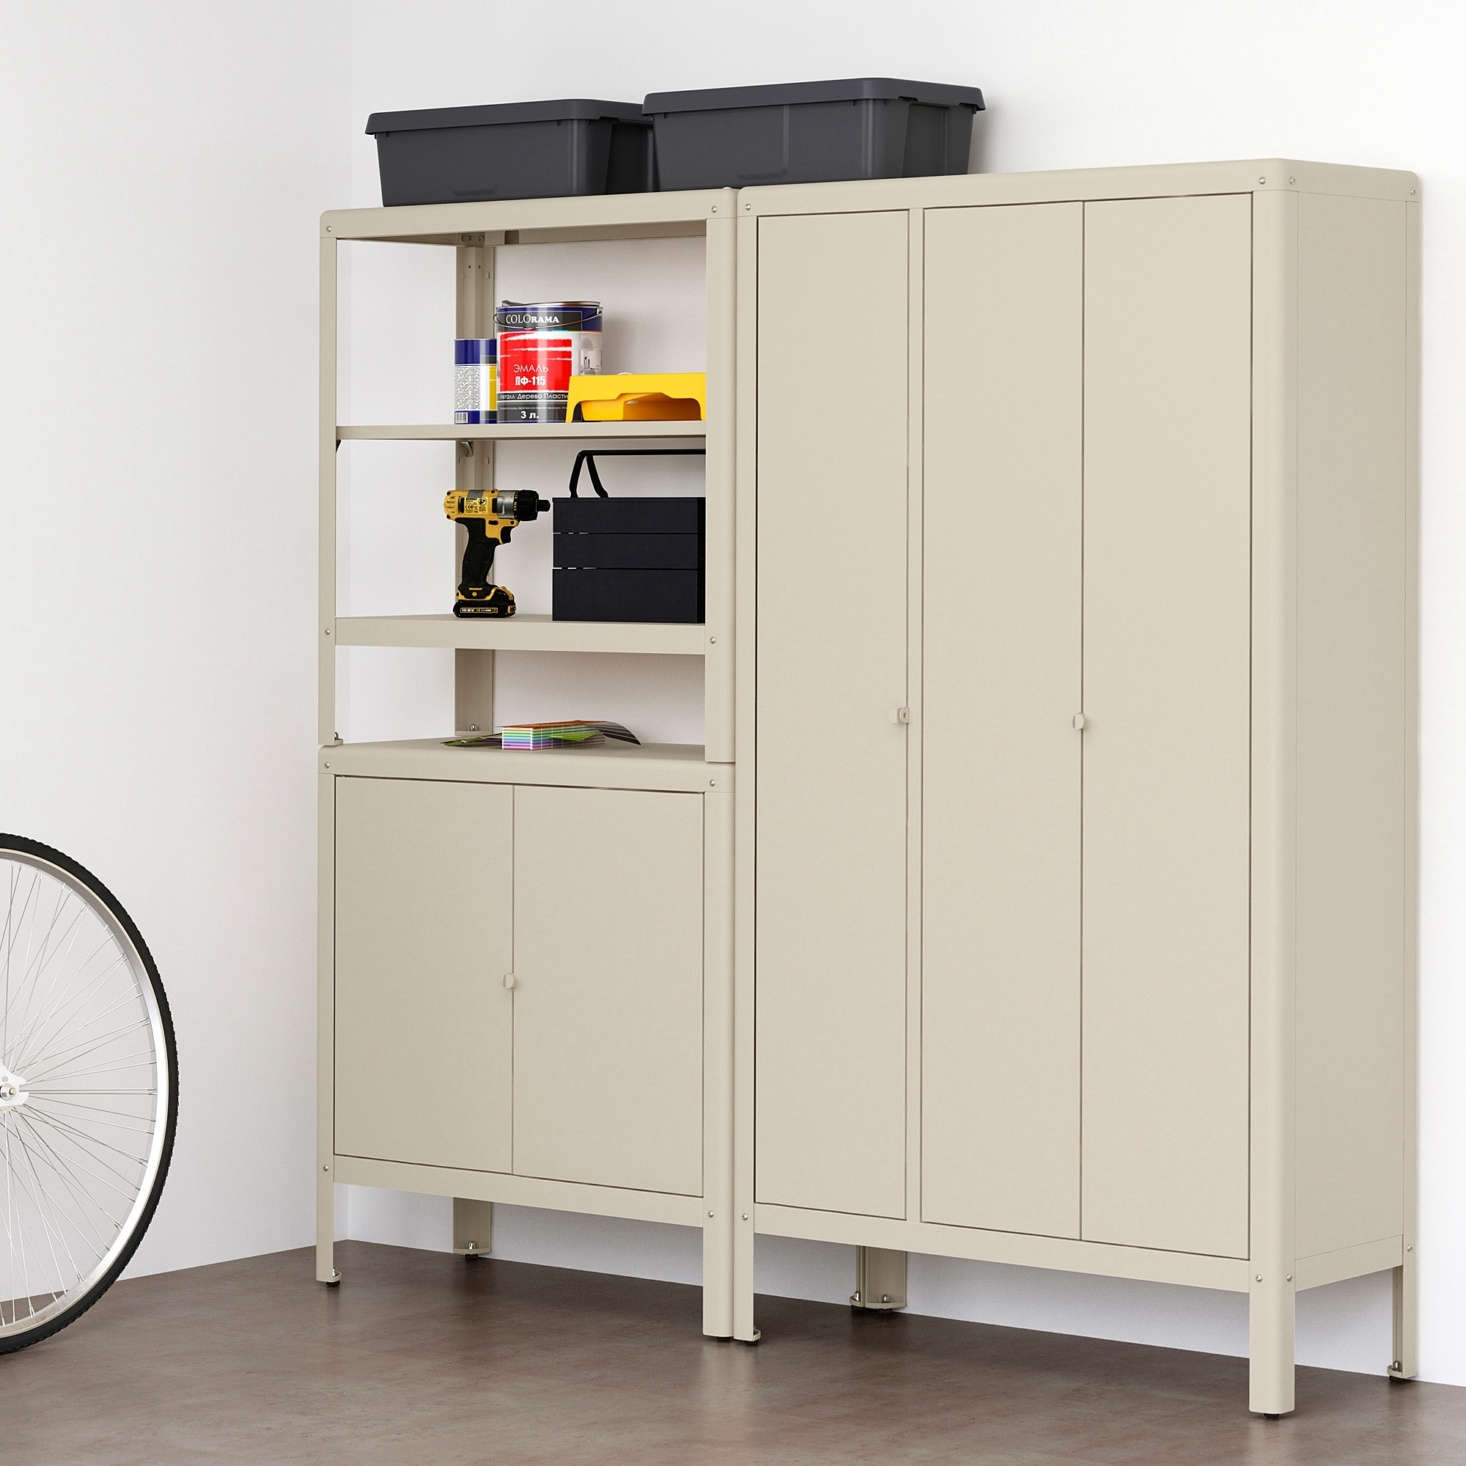 10 Easy Pieces: Garage Storage Cabinet Systems